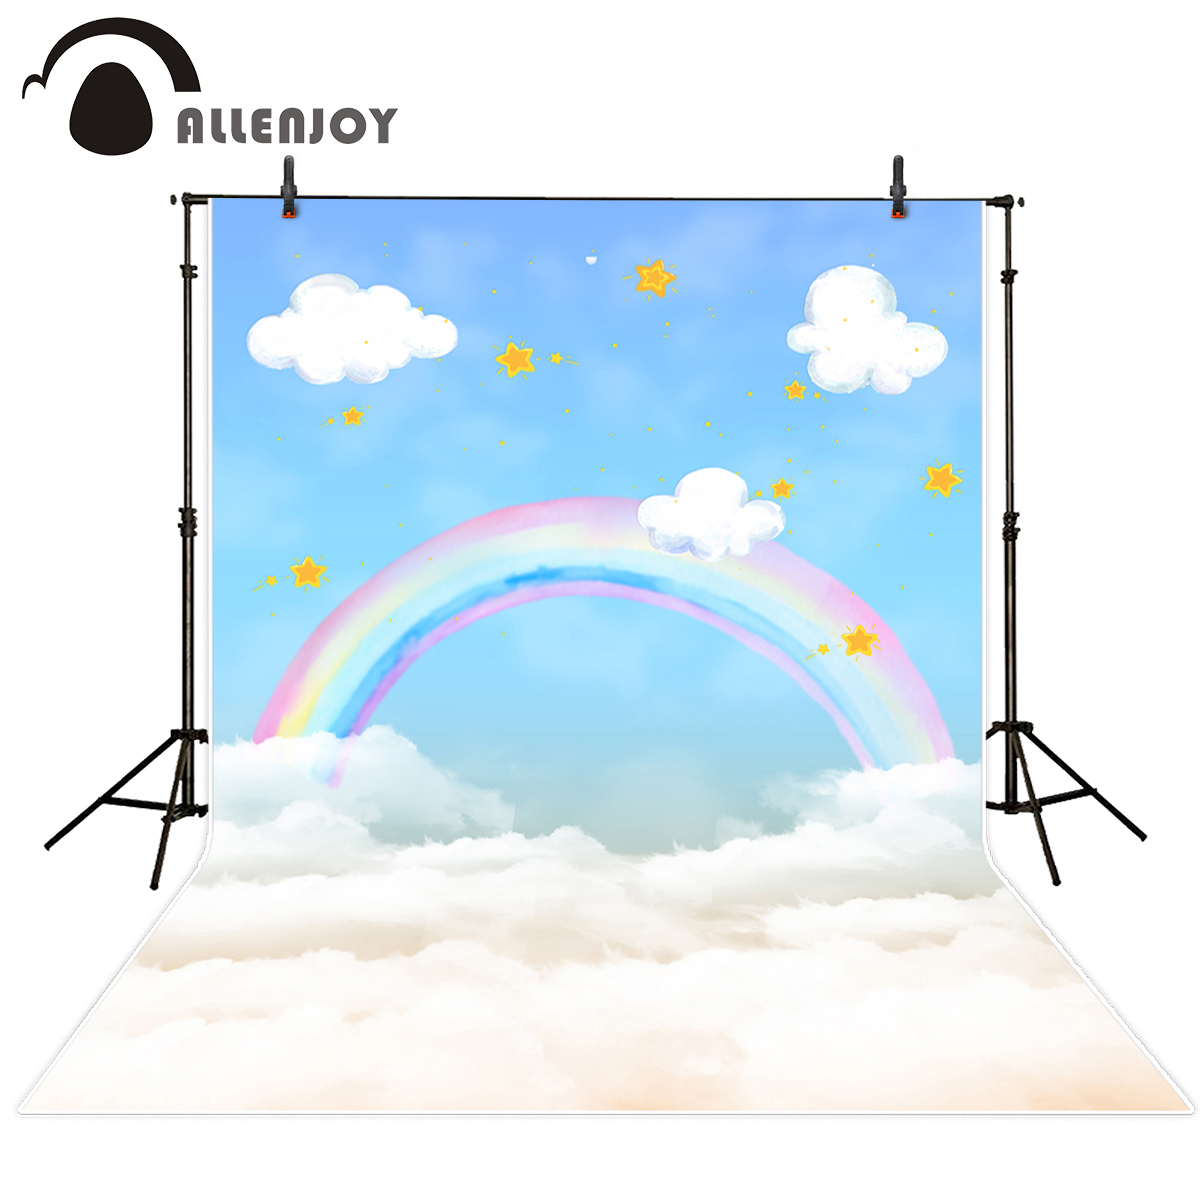 Allenjoy Vinyl photography The sky Stars Gold Rainbow cloud photography backdrop personal custom Partner name backdrop тарифные планы